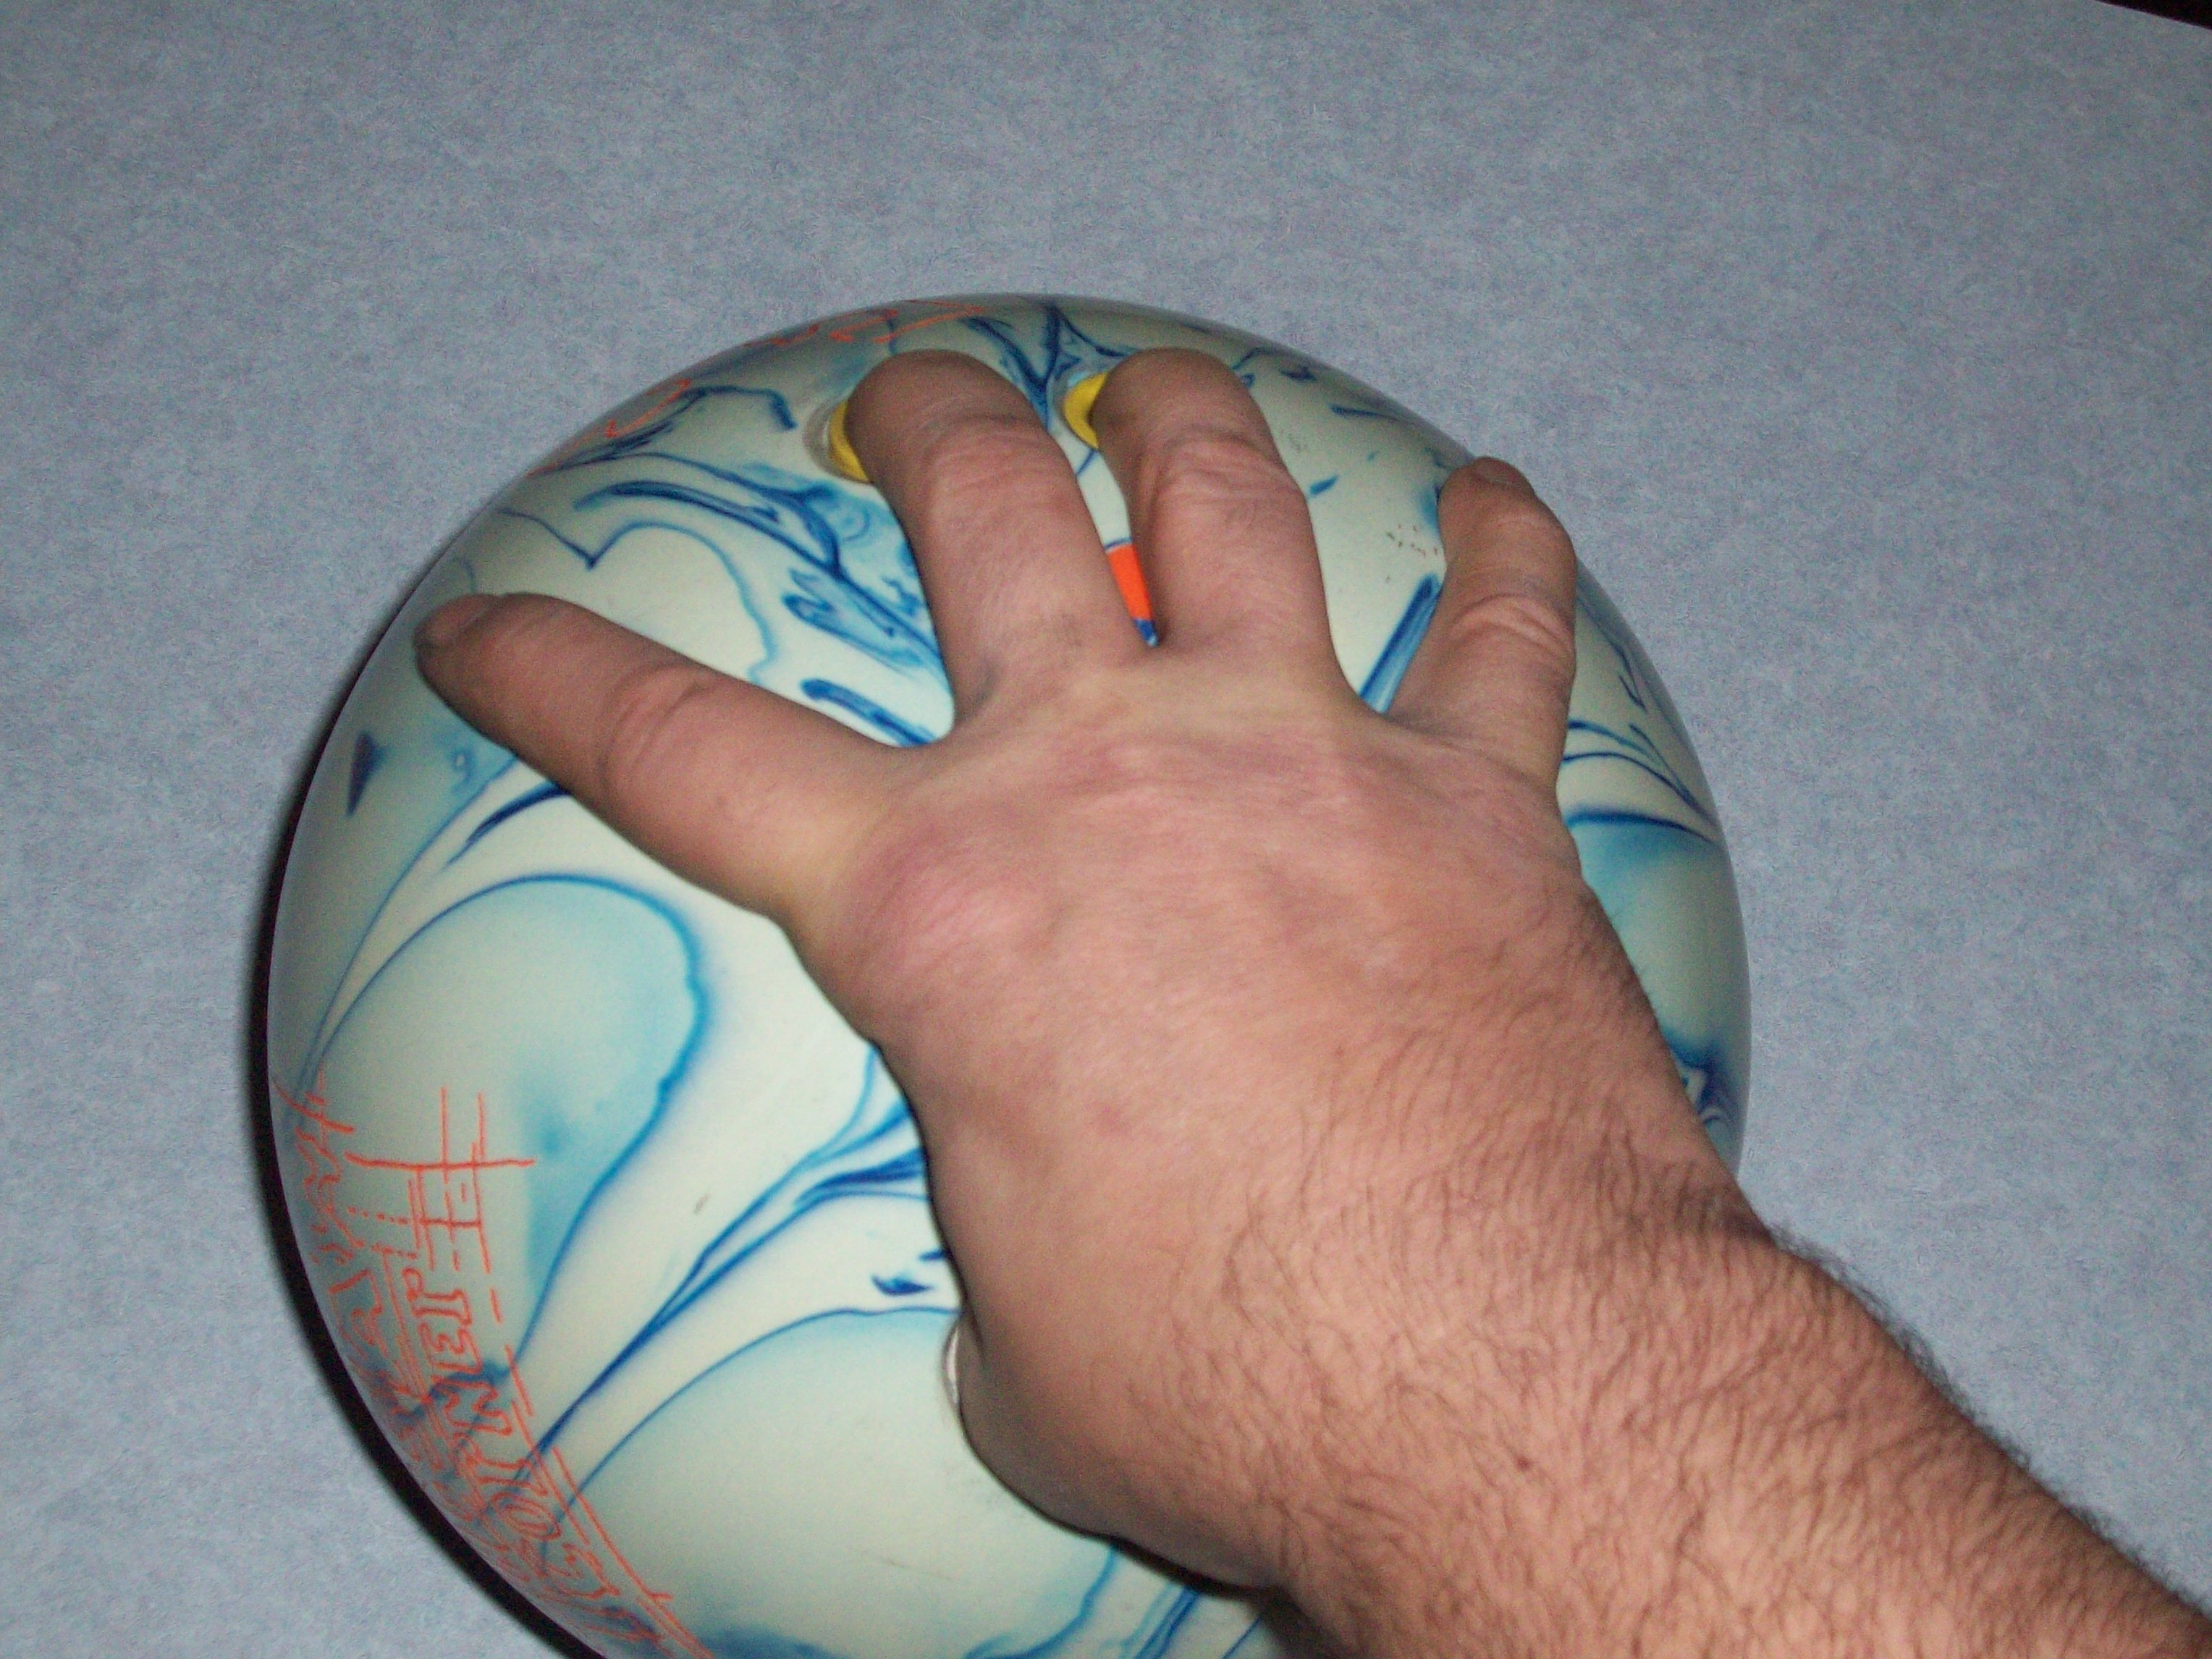 Bowling Finger Positions, Wide Index and Pinkie Finger Position, Bowling Wrist Hand Positions,  Hand Position Used In Bowling, Wide Index and Pinkie Finger Position in Bowling, bowling, ball, hand, finger, wrist, positions